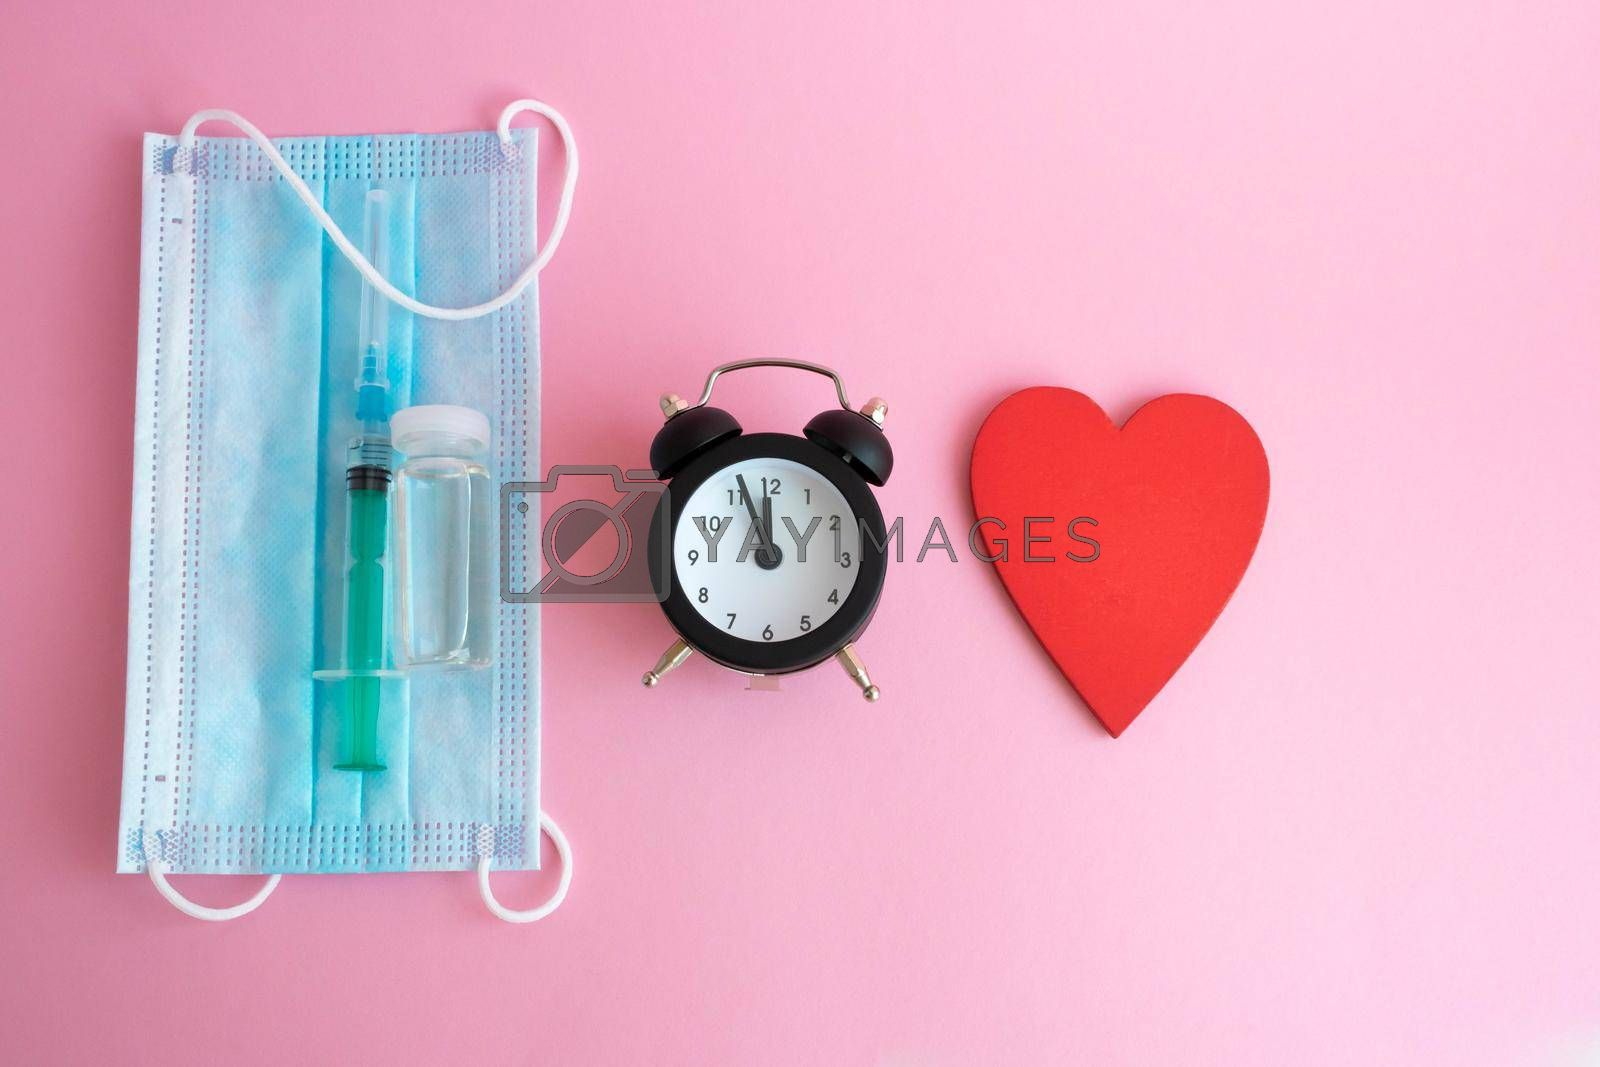 On a pink background-a mask, a syringe, a bottle of vaccine, a watch and a red wooden heart. The concept of medicine and health care.